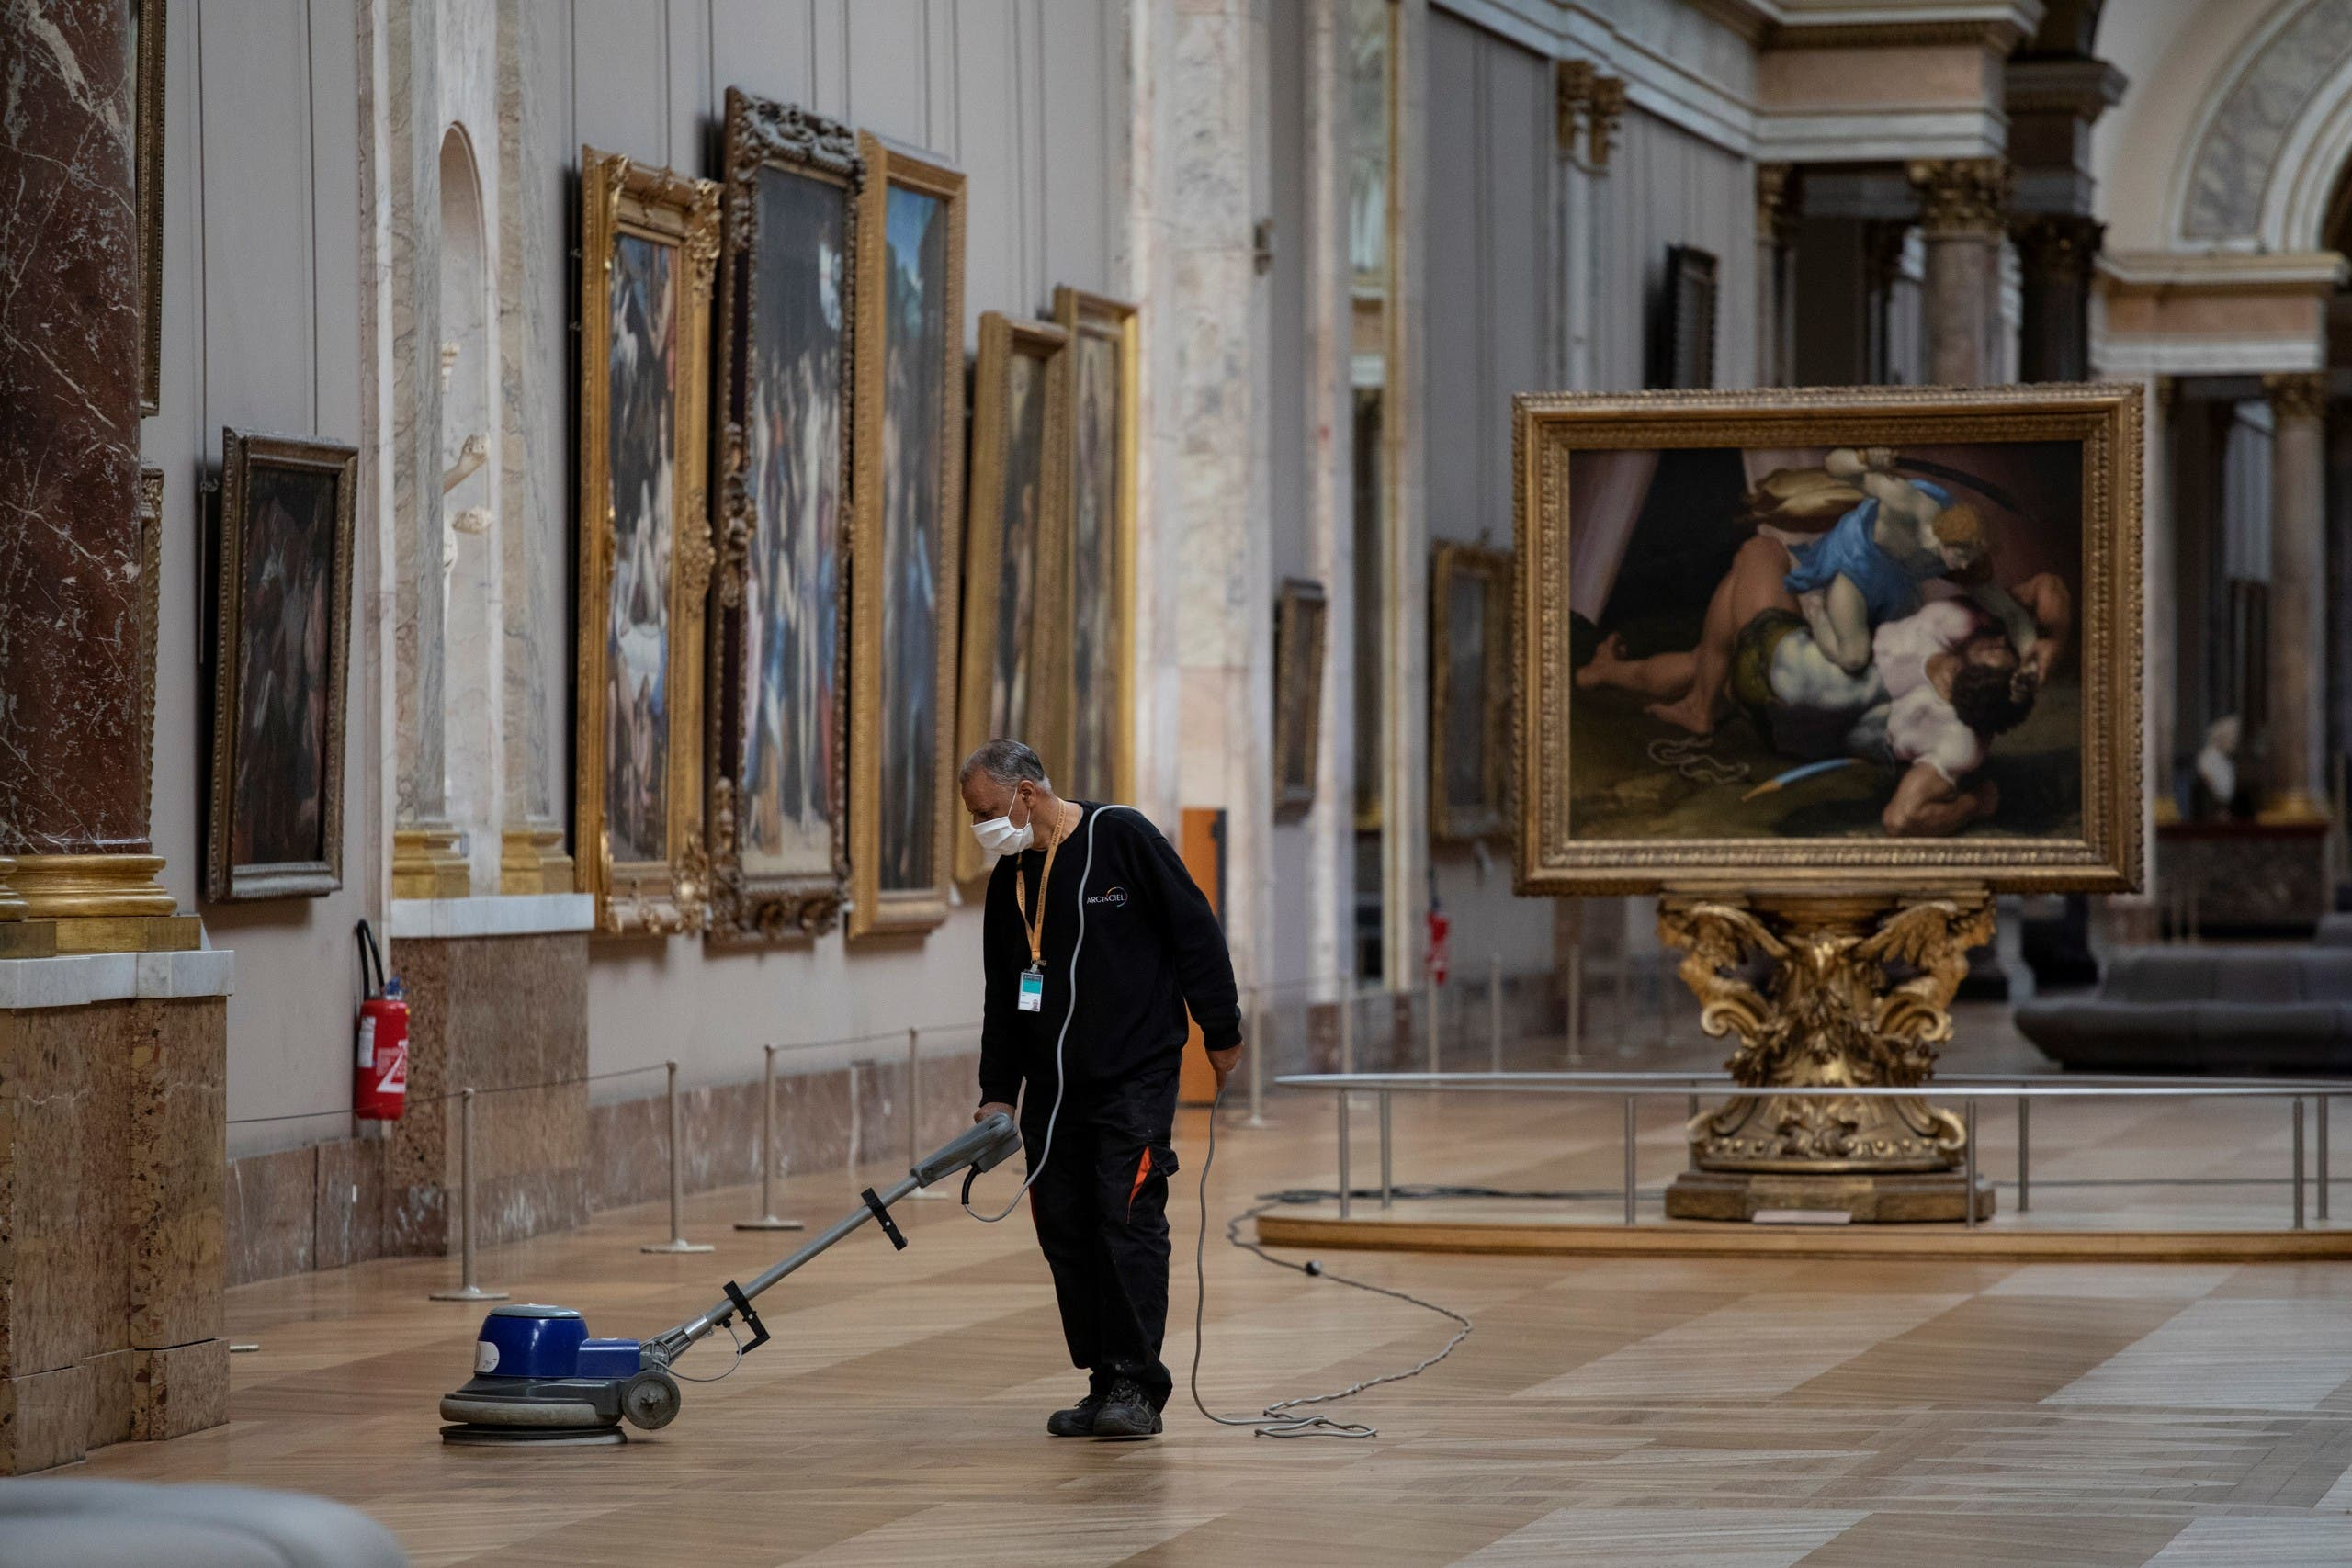 An employee cleaning the floor of a room of the Musee du Louvre in Paris. (AFP)